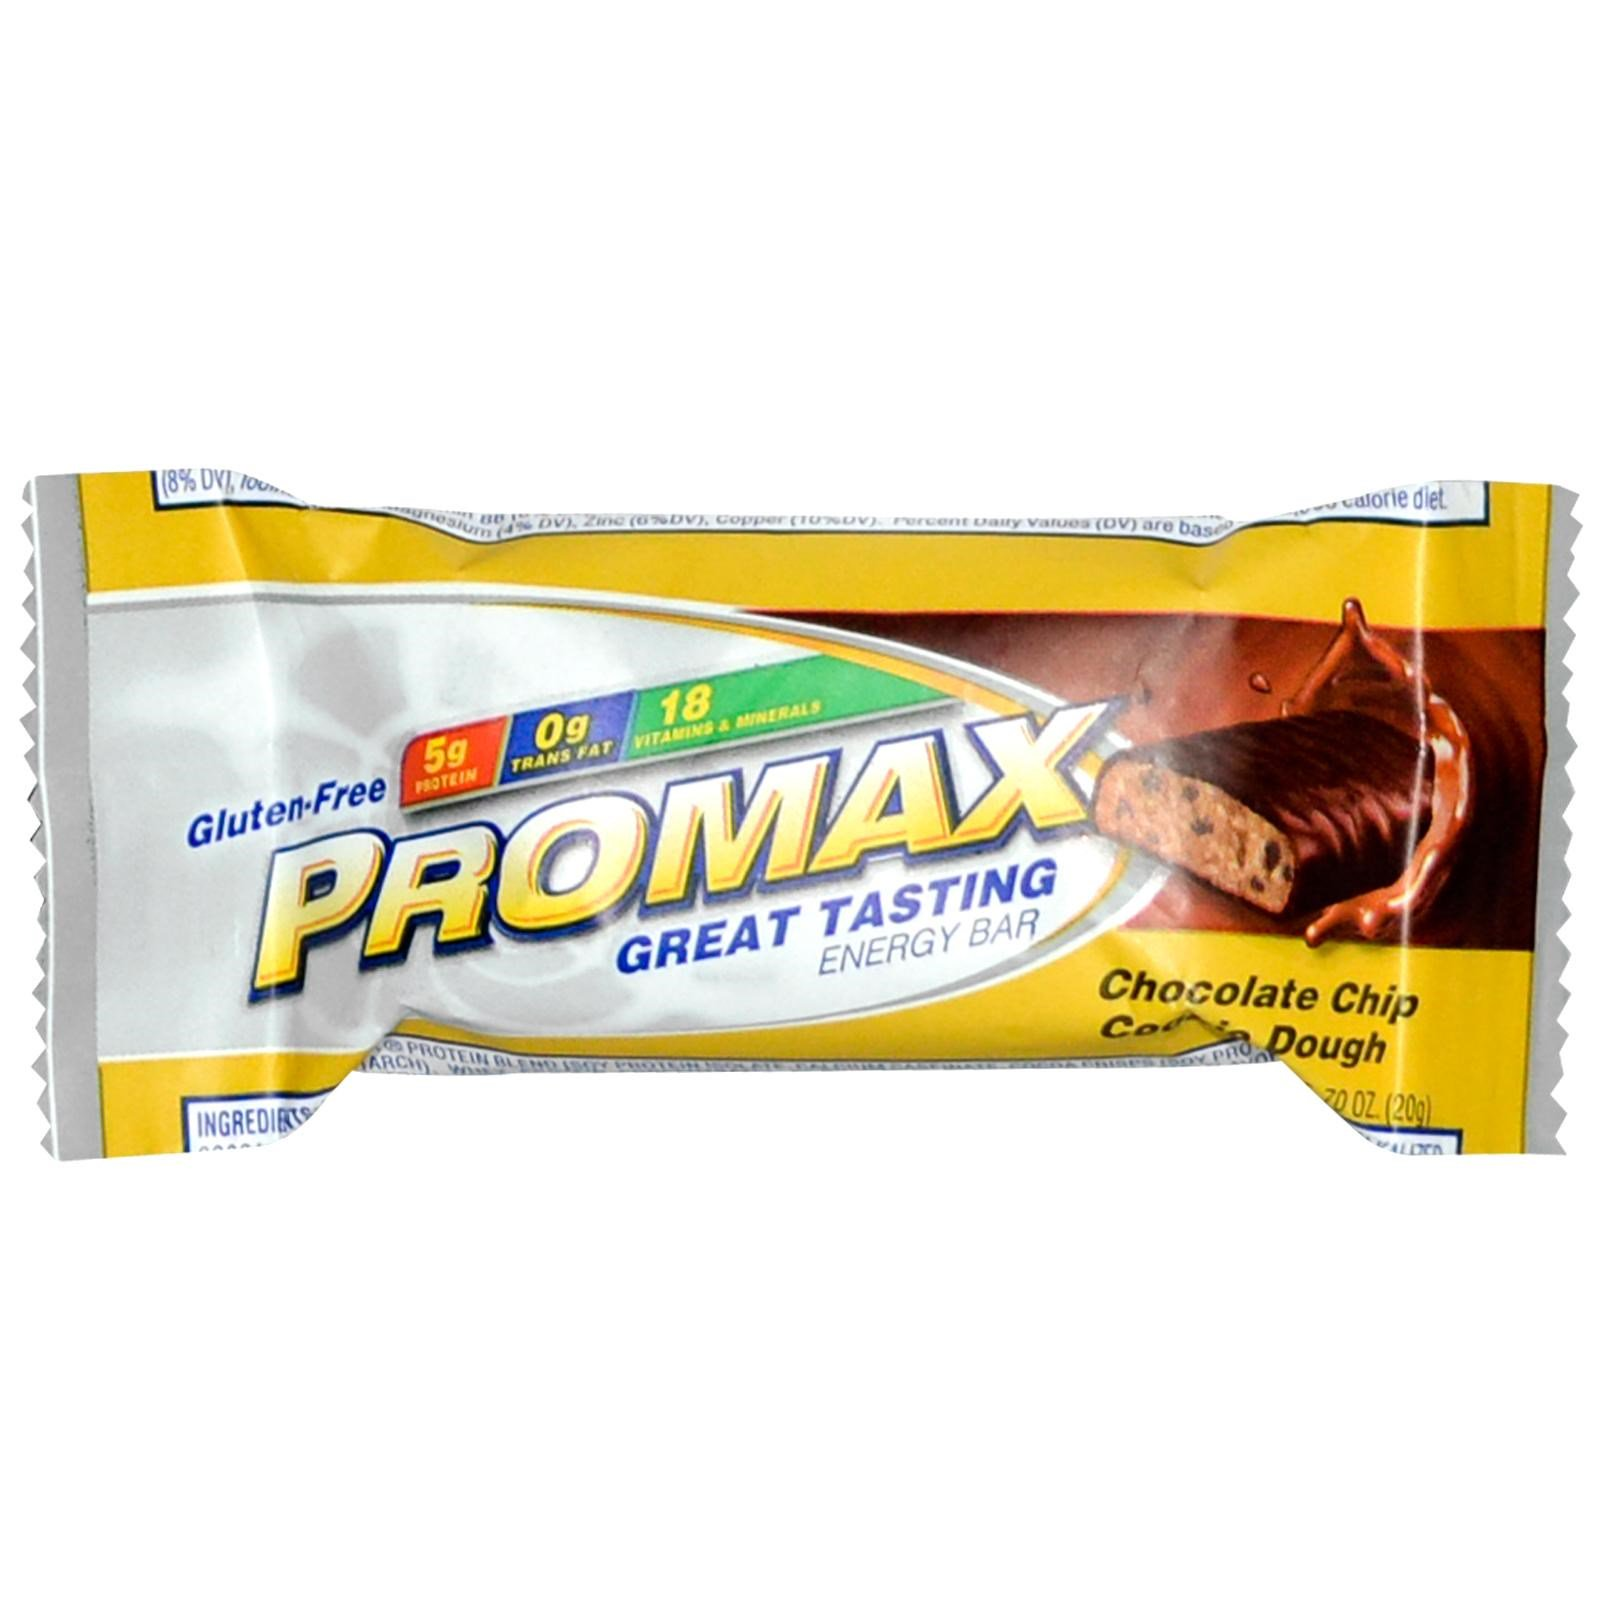 Promax Energy Bar Nutrition Facts Blog Dandk